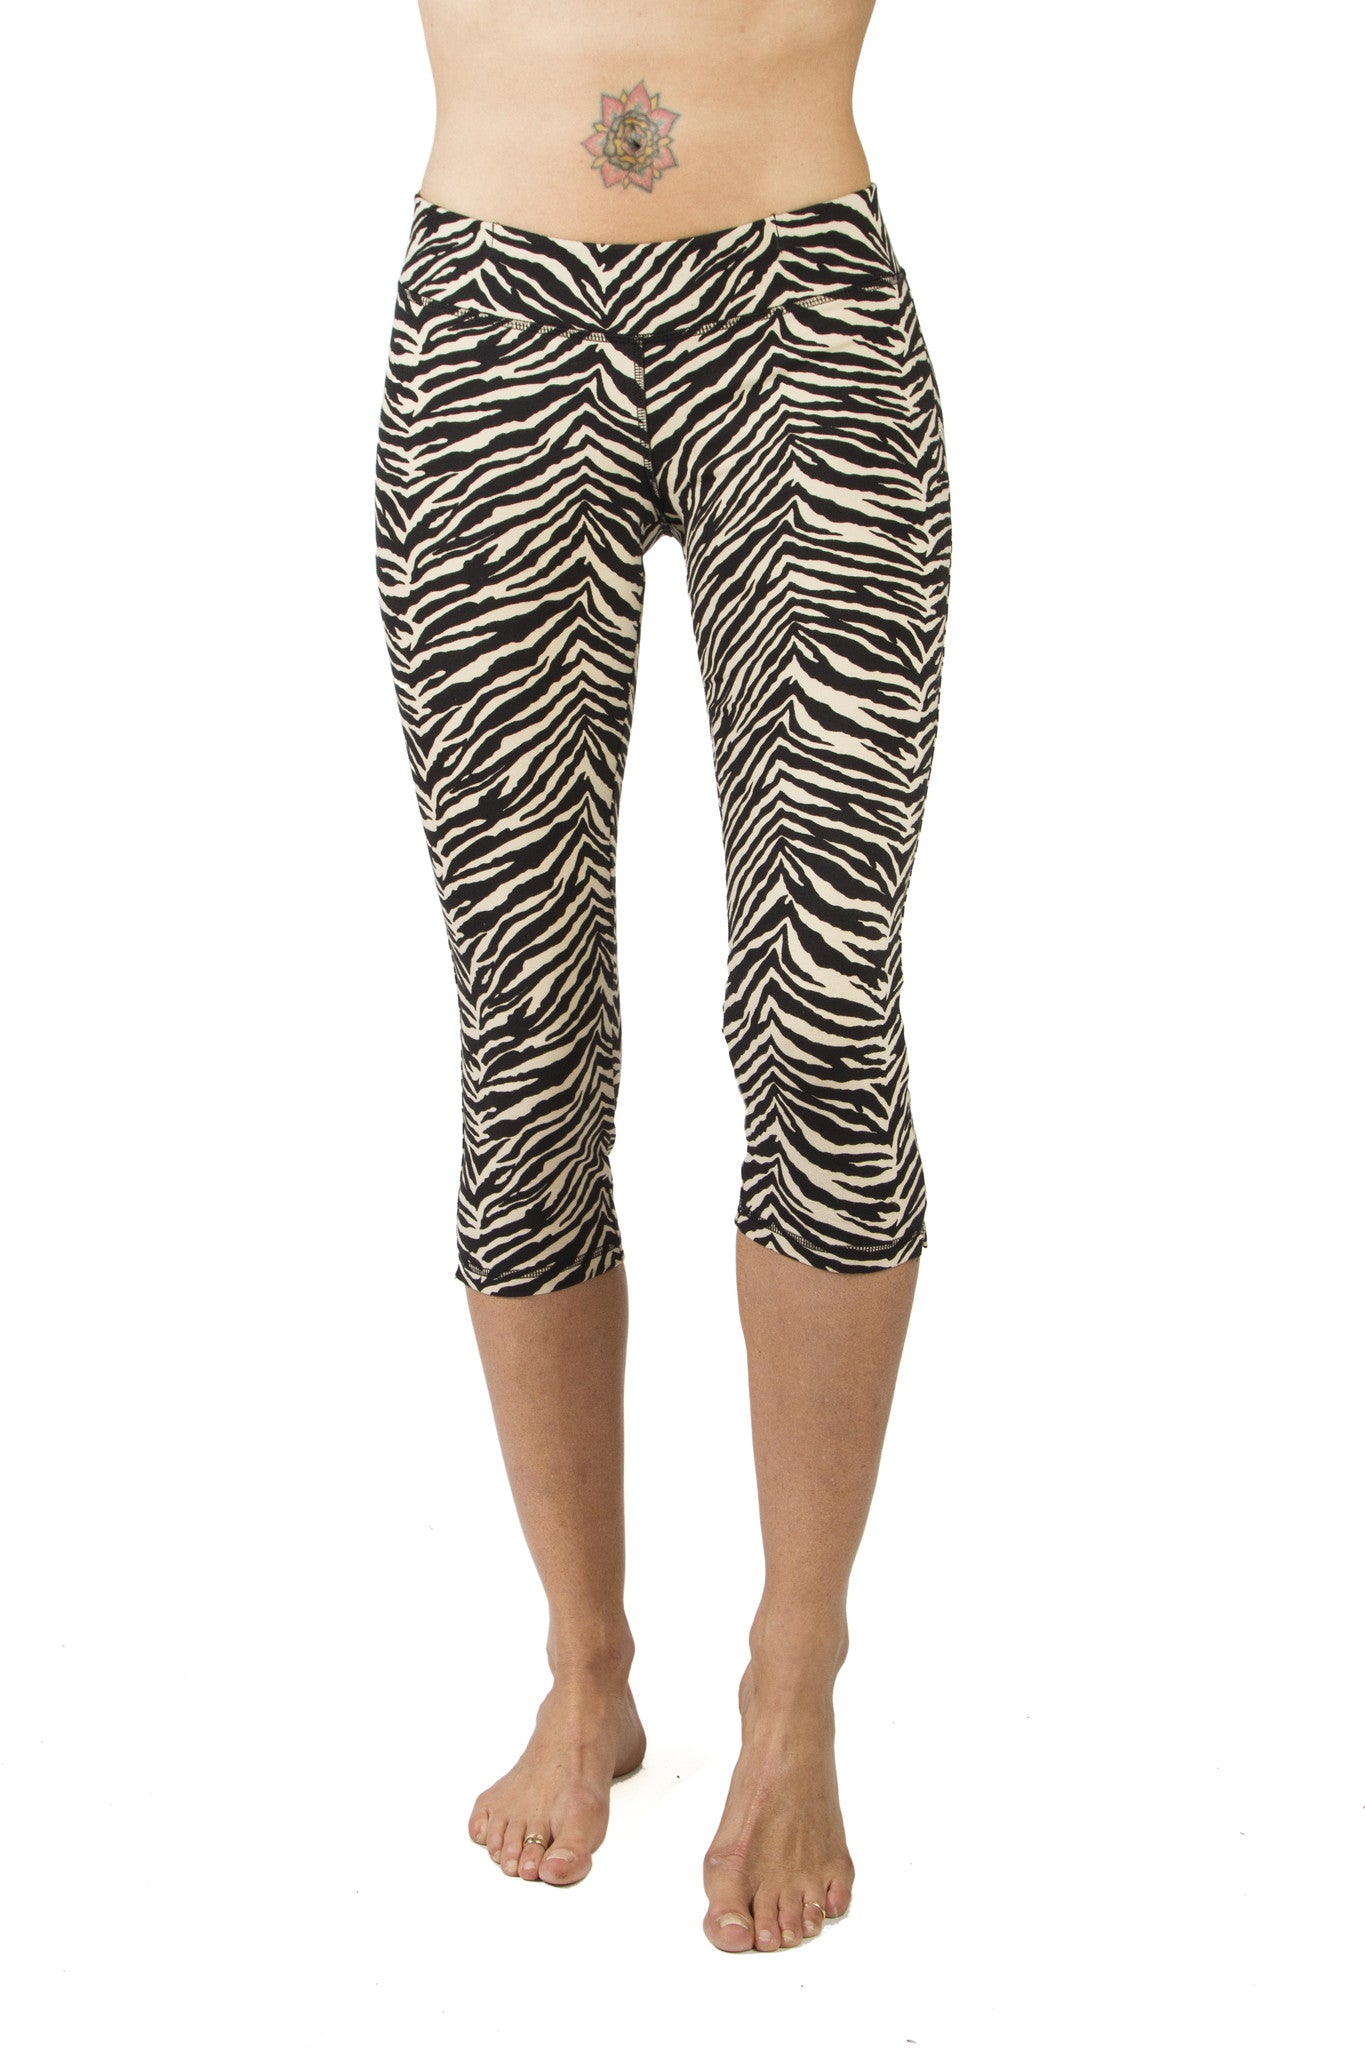 Capri Tights - Zebra Cream Black - FUNKY SIMPLICITY